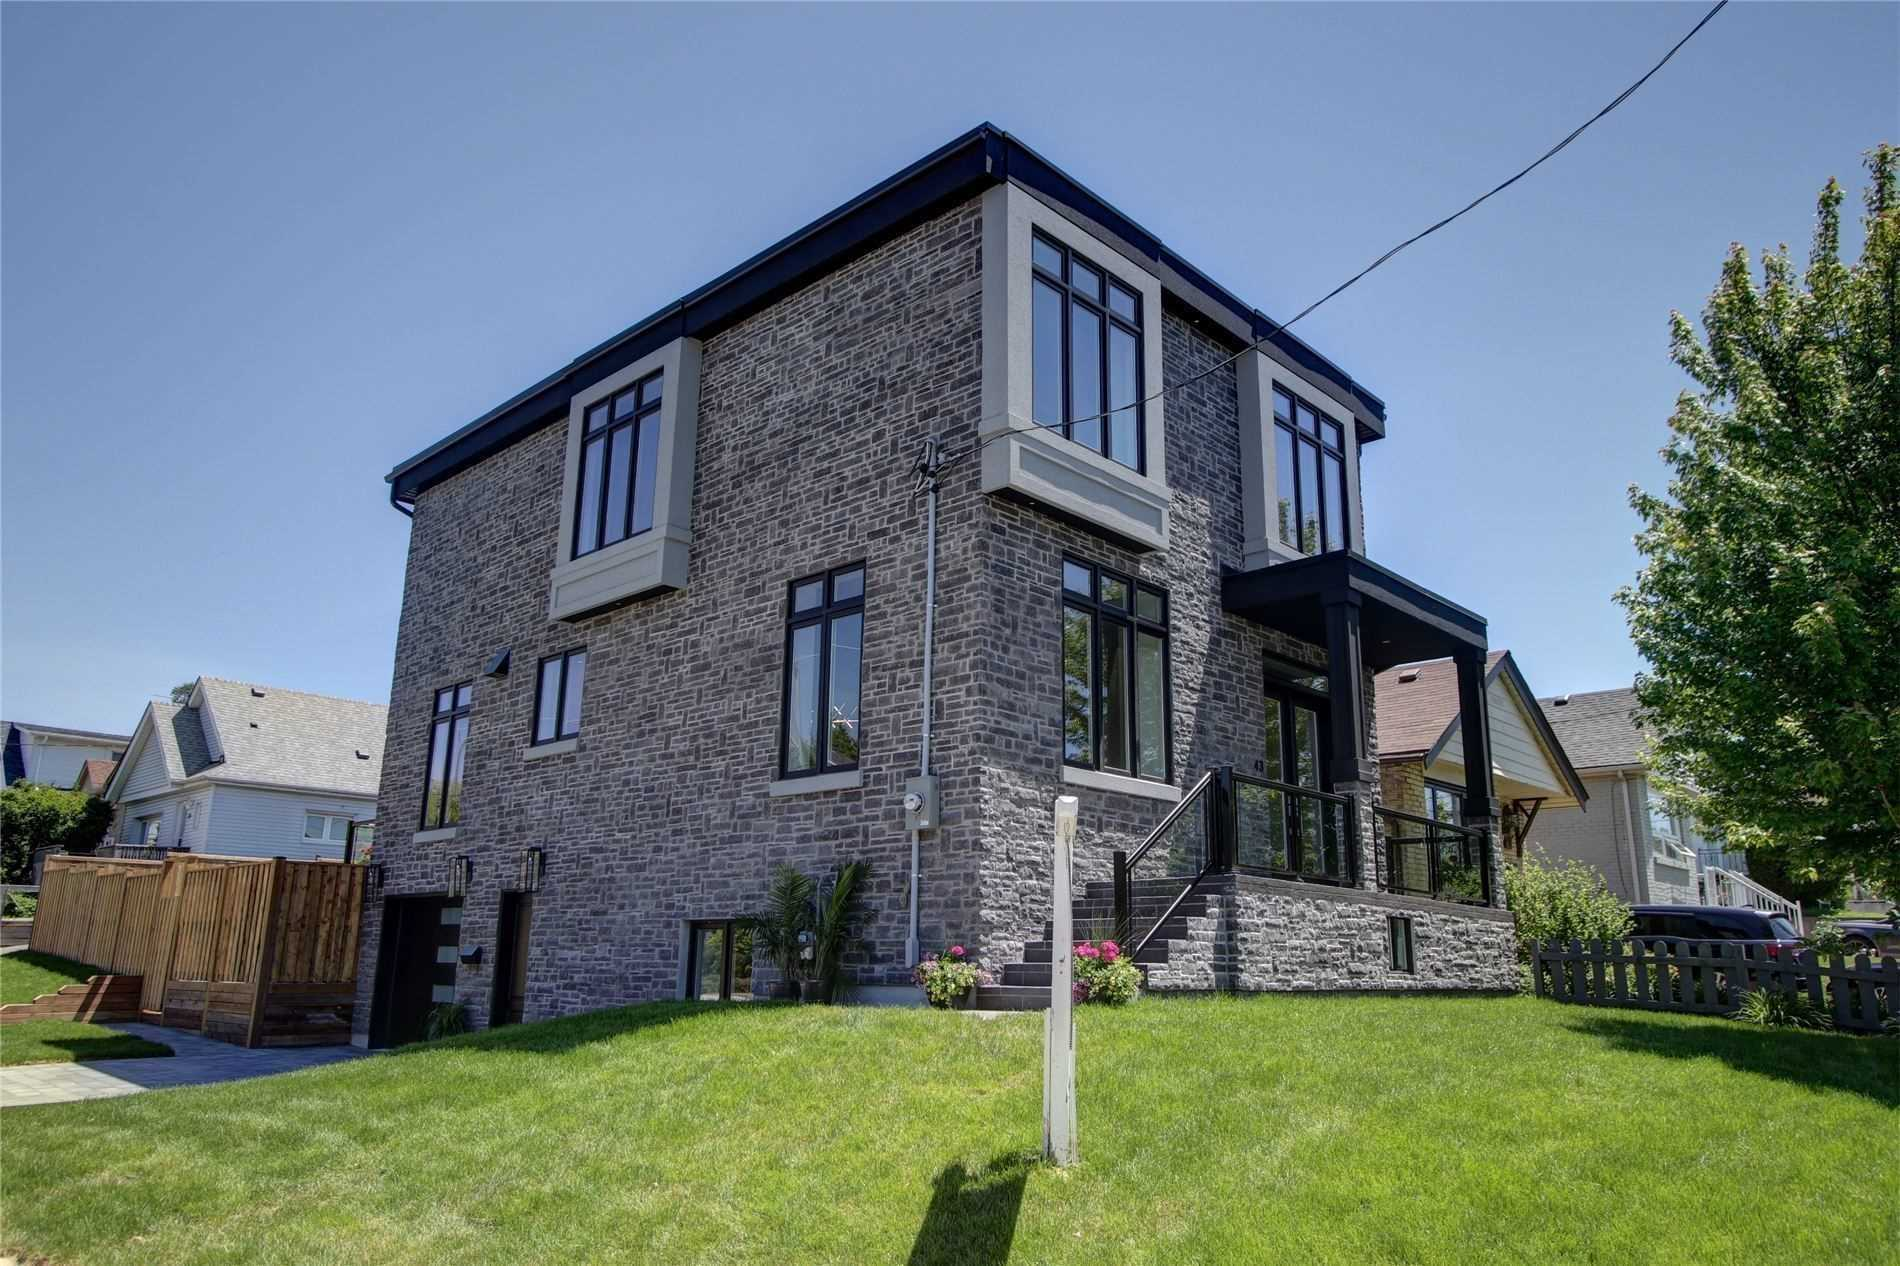 43 Glenburn Ave - E4912373- $1,599,000